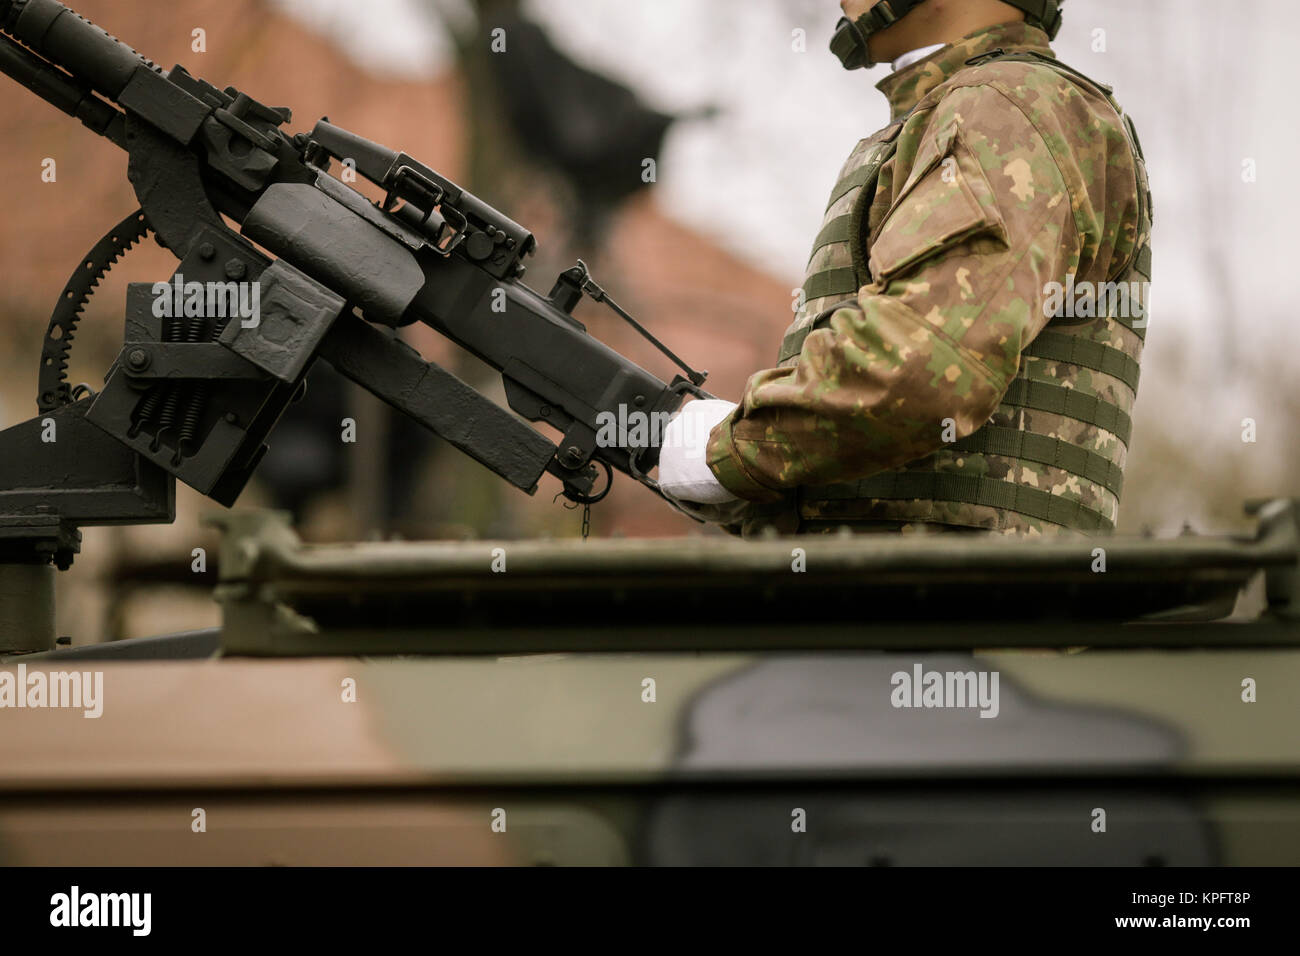 Armed soldiers take part at a military parade - Stock Image